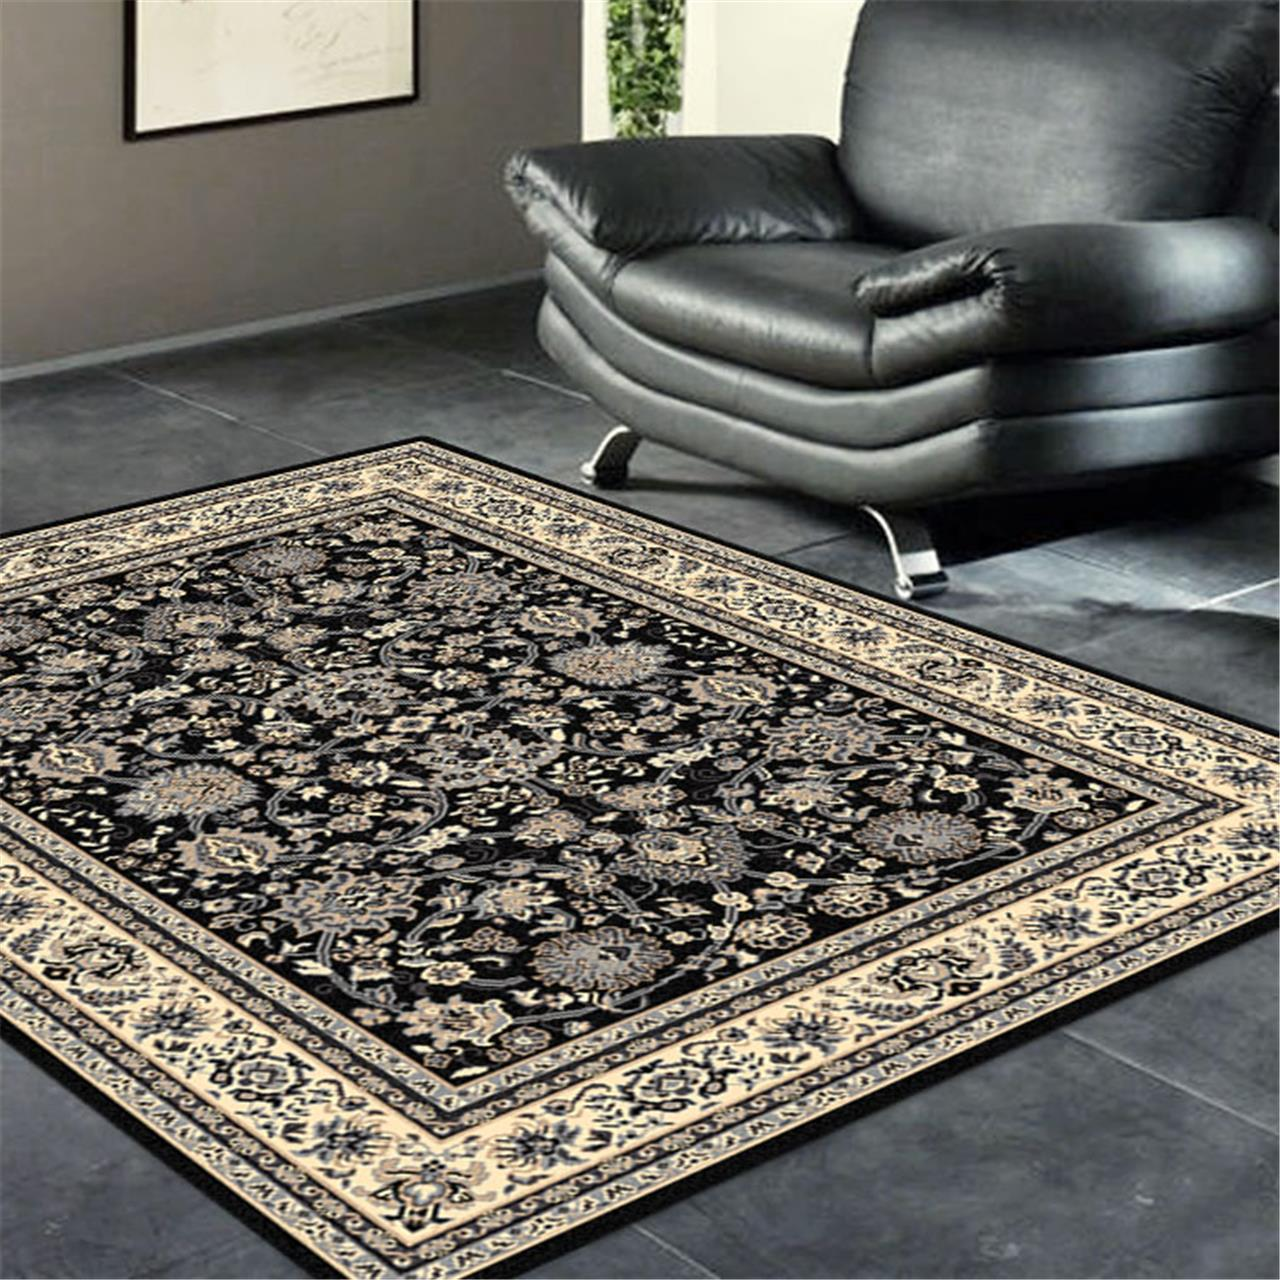 SUPERIOR DESIGN BLACK RUGS AREA - Store Zone-Online Shopping Store Melbourne Australia